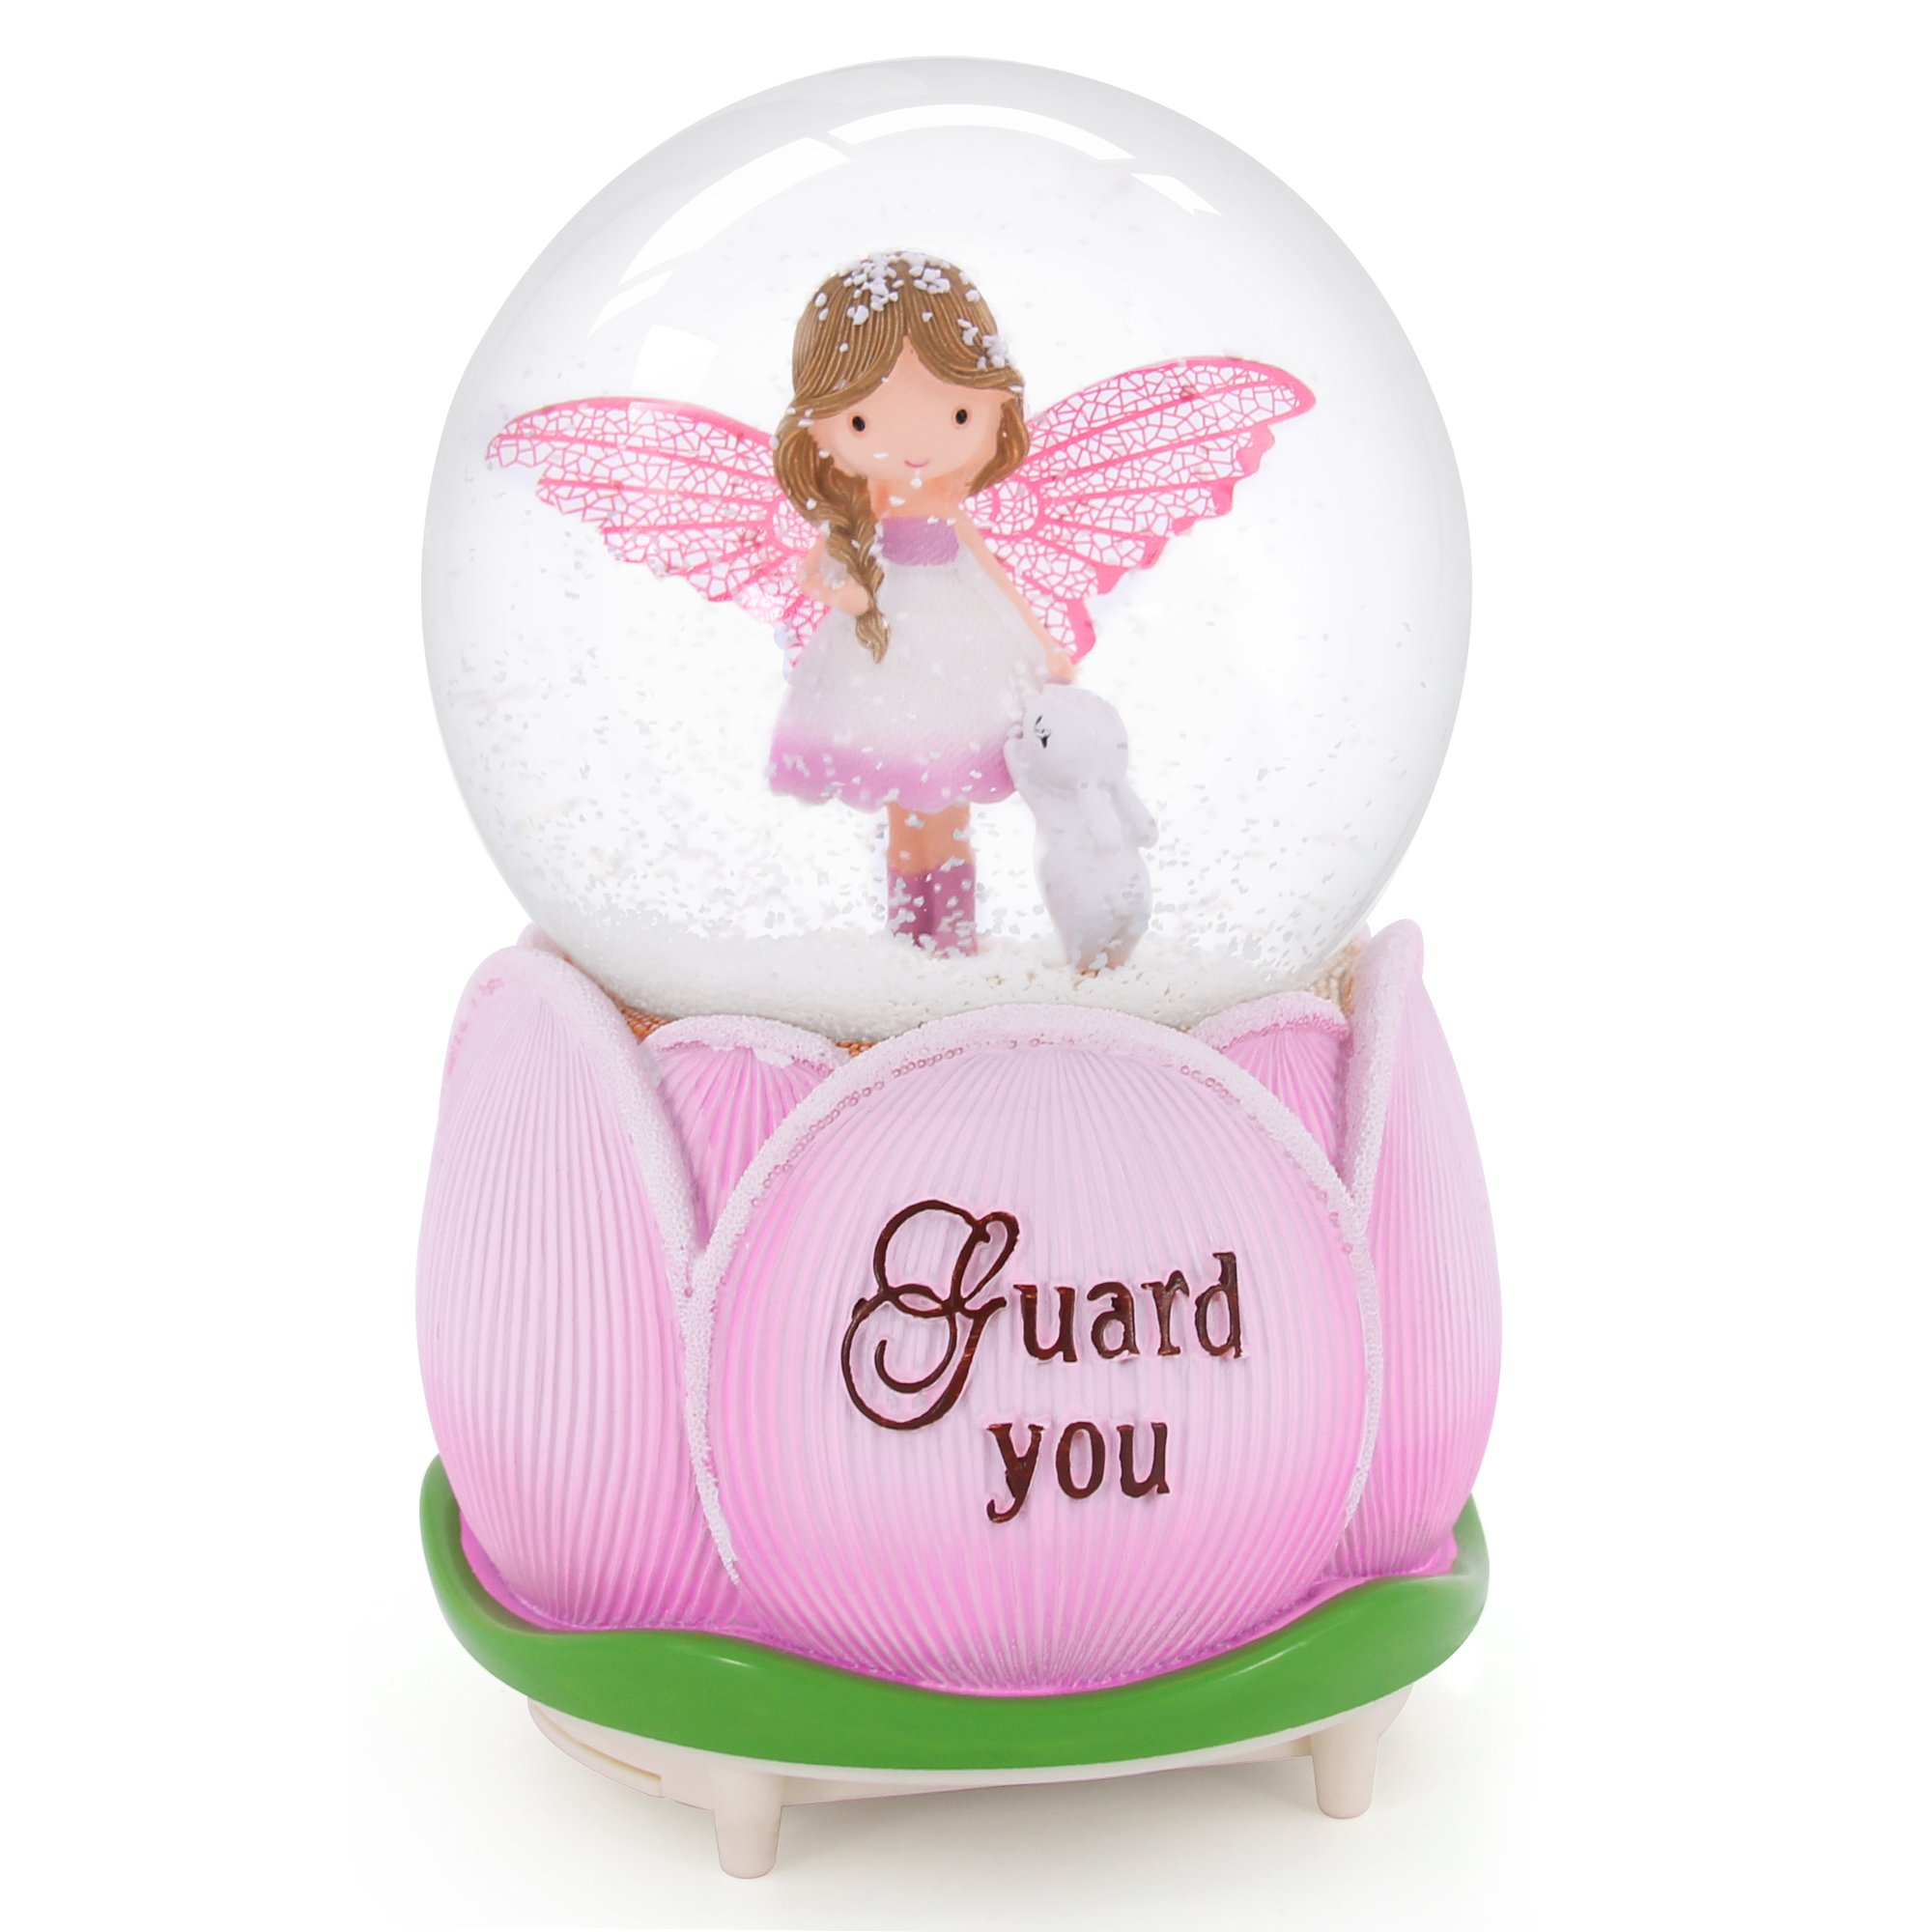 QTMY Musical Snow Globes Ornament Angel Girl Music Boxes with Led Light Crystal Ball for Kids Girls